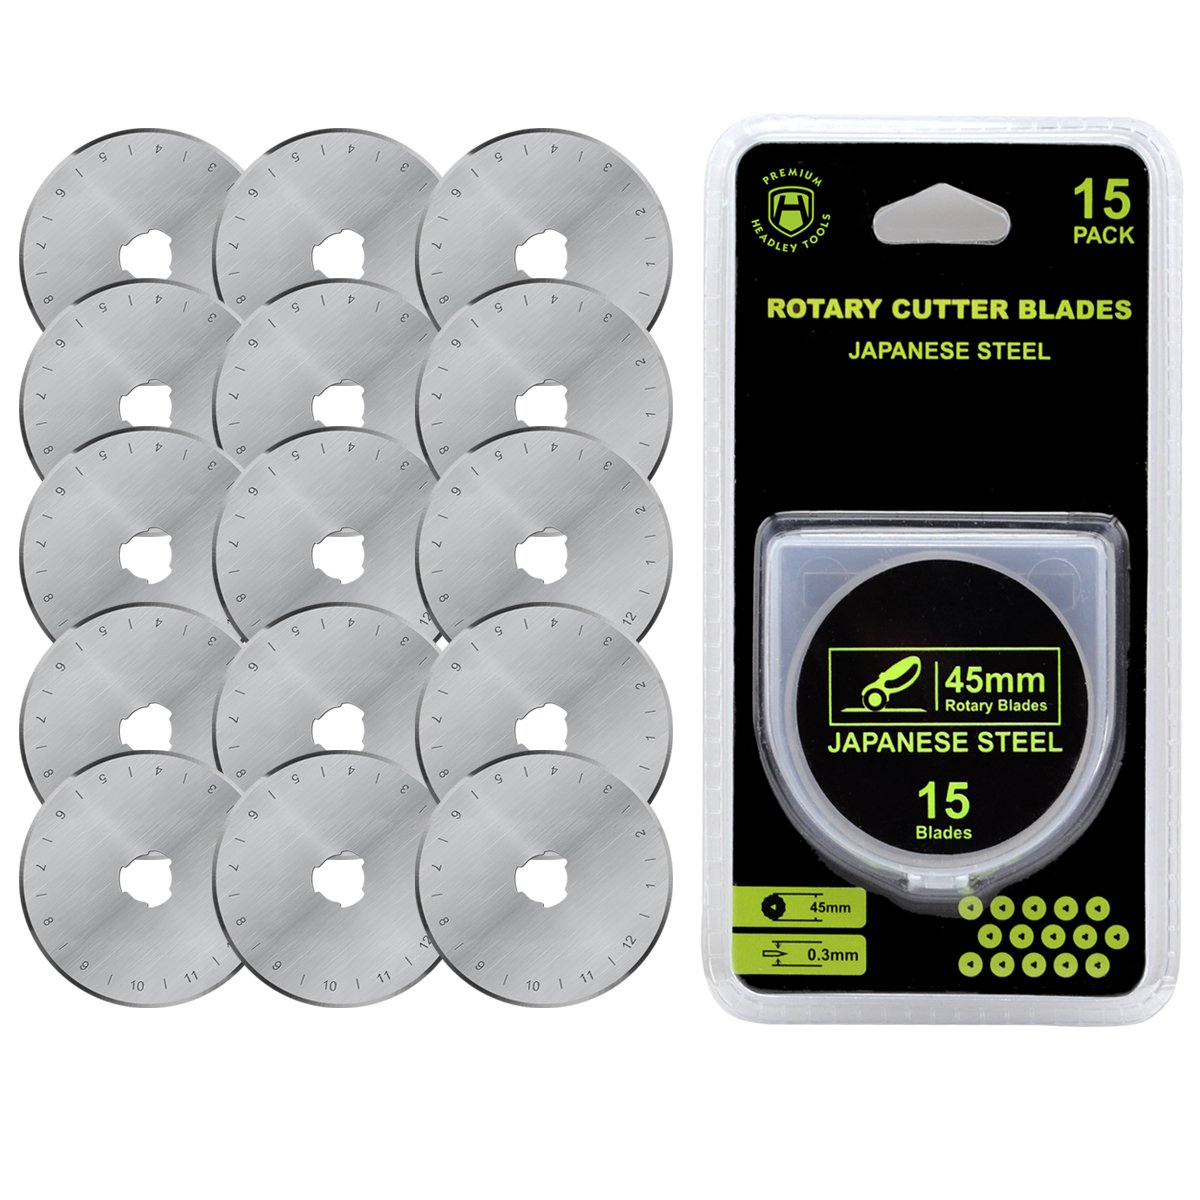 Headley Tools 45mm Rotary Cutter Blade(pack of 15) Fits Olfa Fiskars Turecut (45MM, Quantity 15pc) HE-HN02